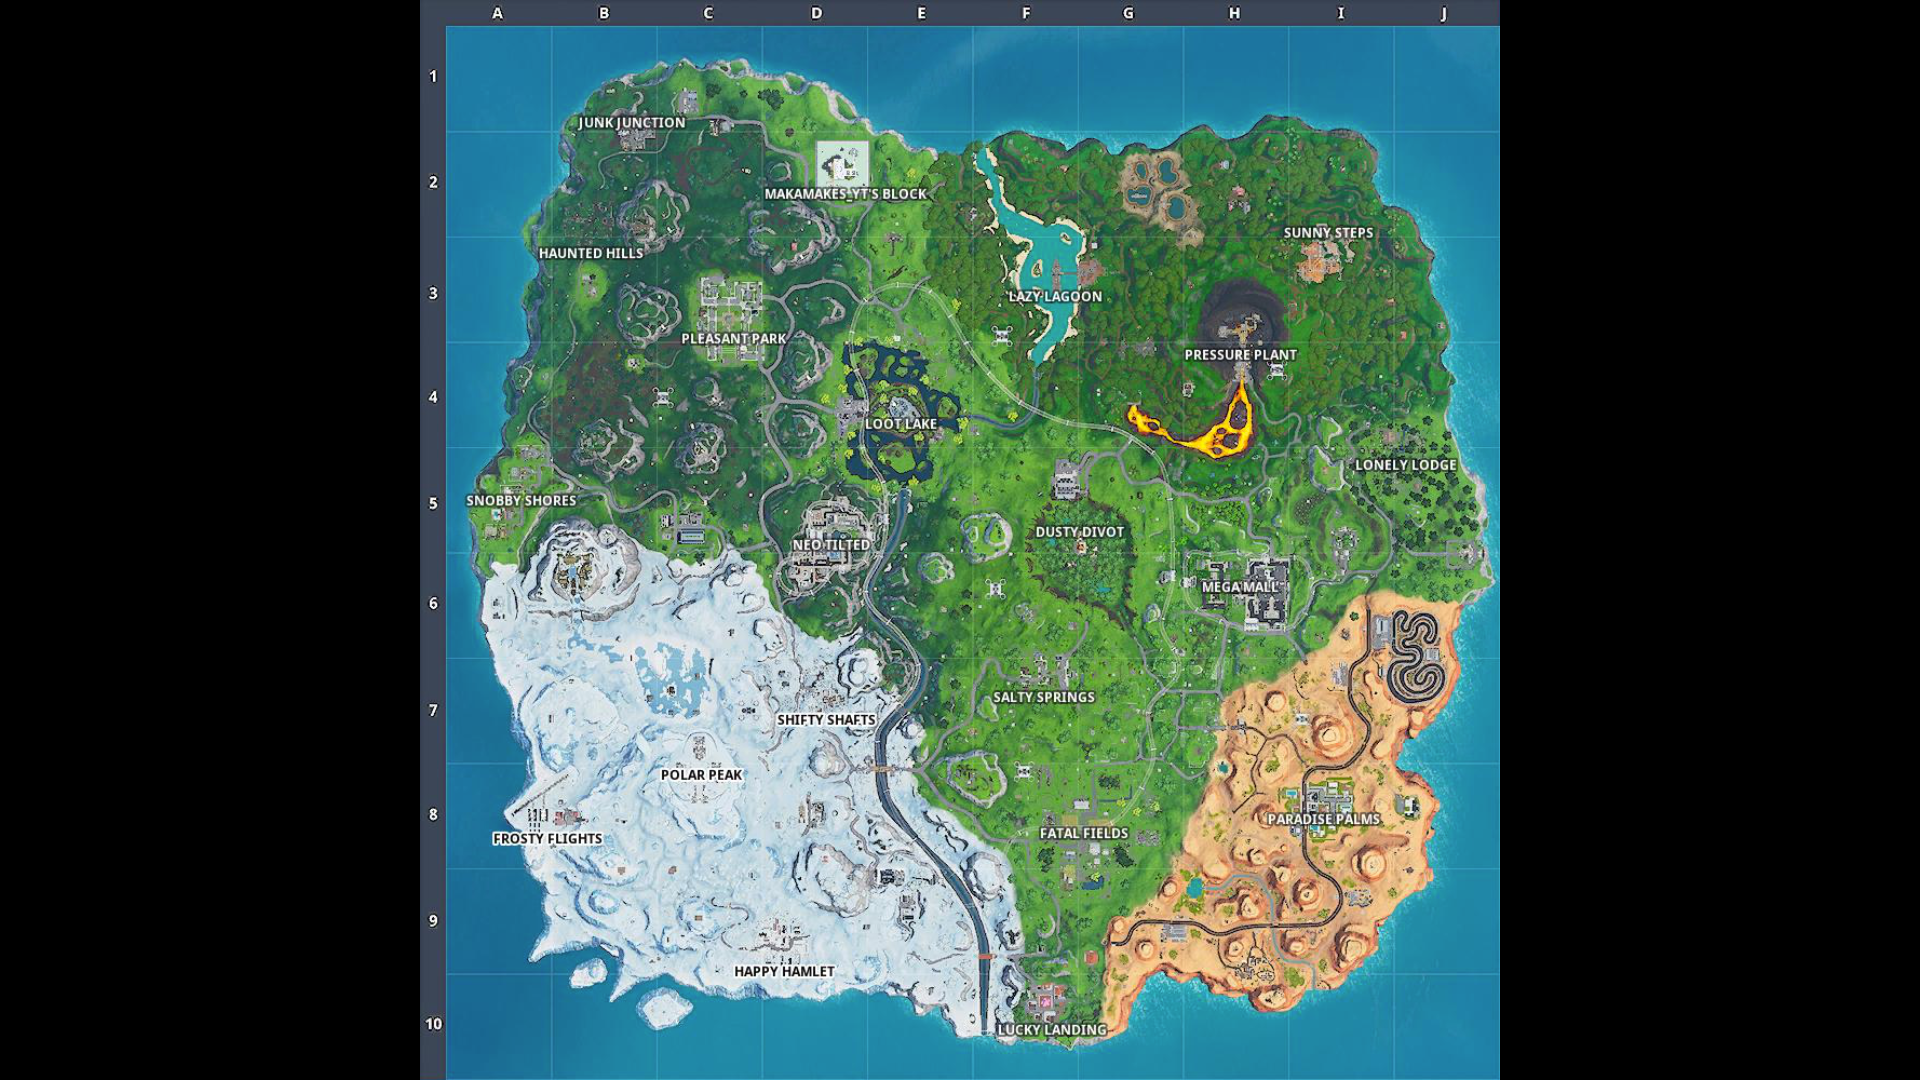 Map Changes Neo Tilted Mega Mall Pressure Plant